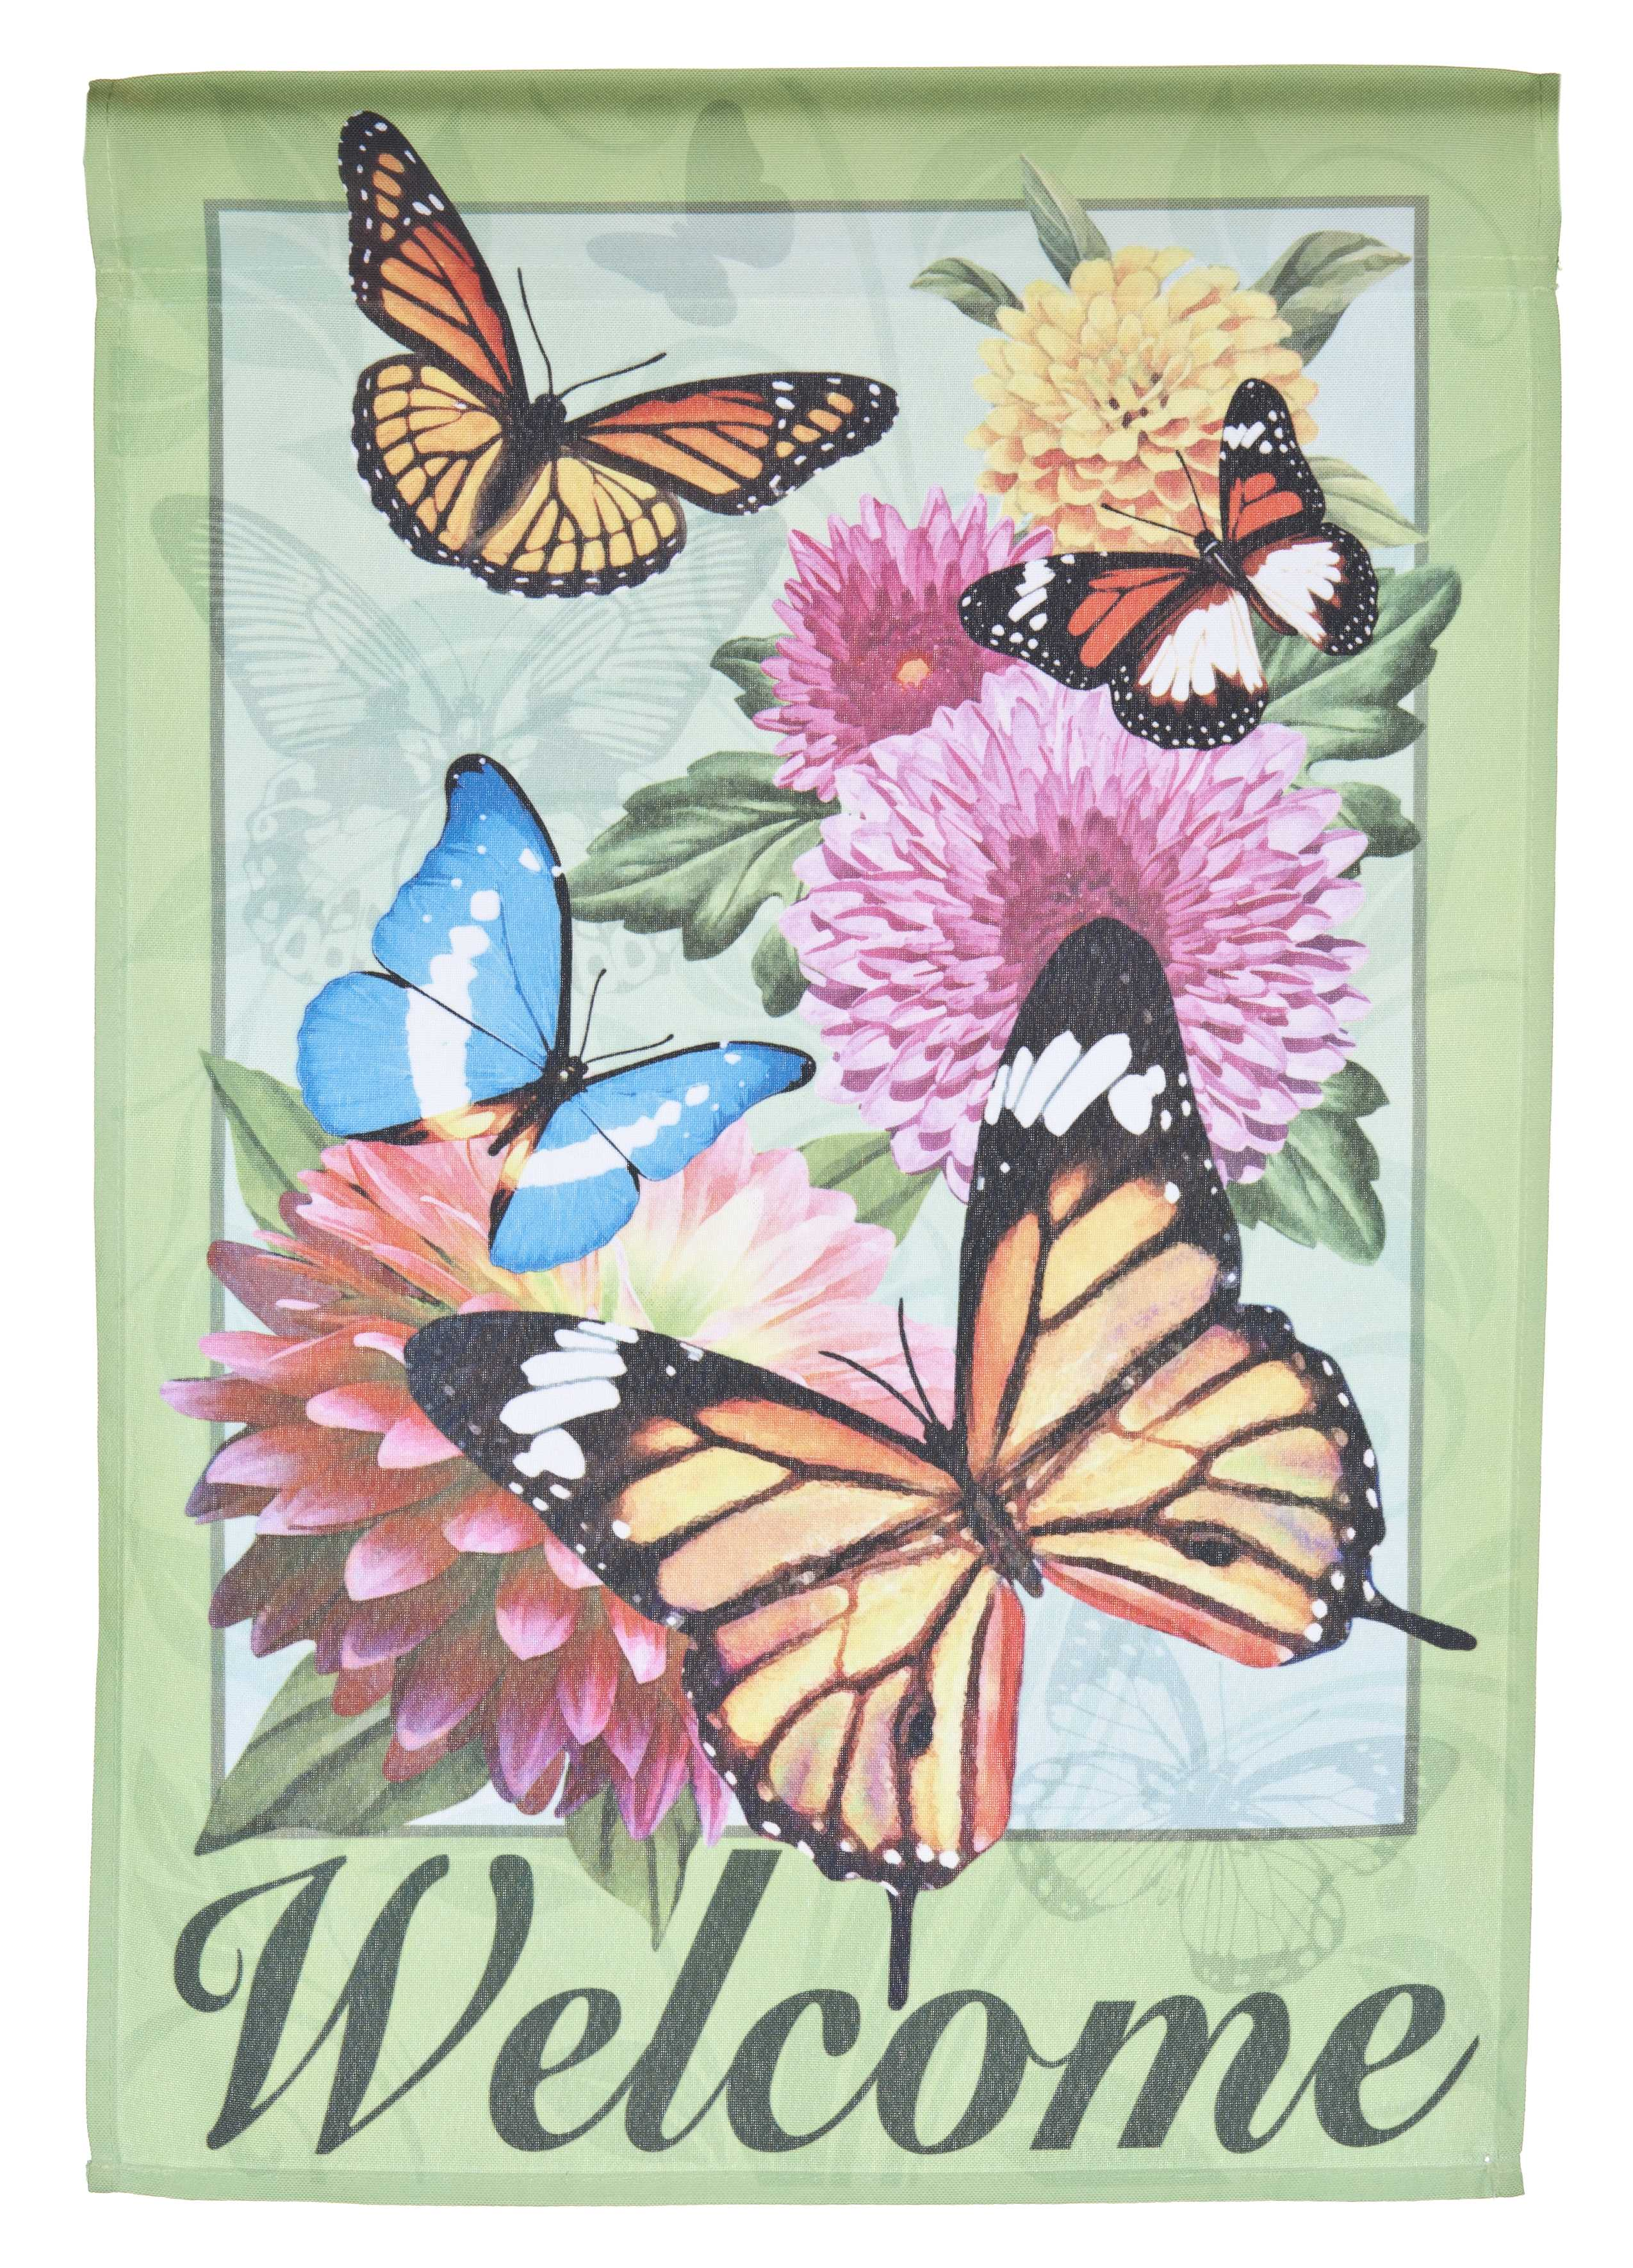 Welcome Lawn Flag w  Butterflies & Flowers by Garden Accents (12 x 18 Inch) by